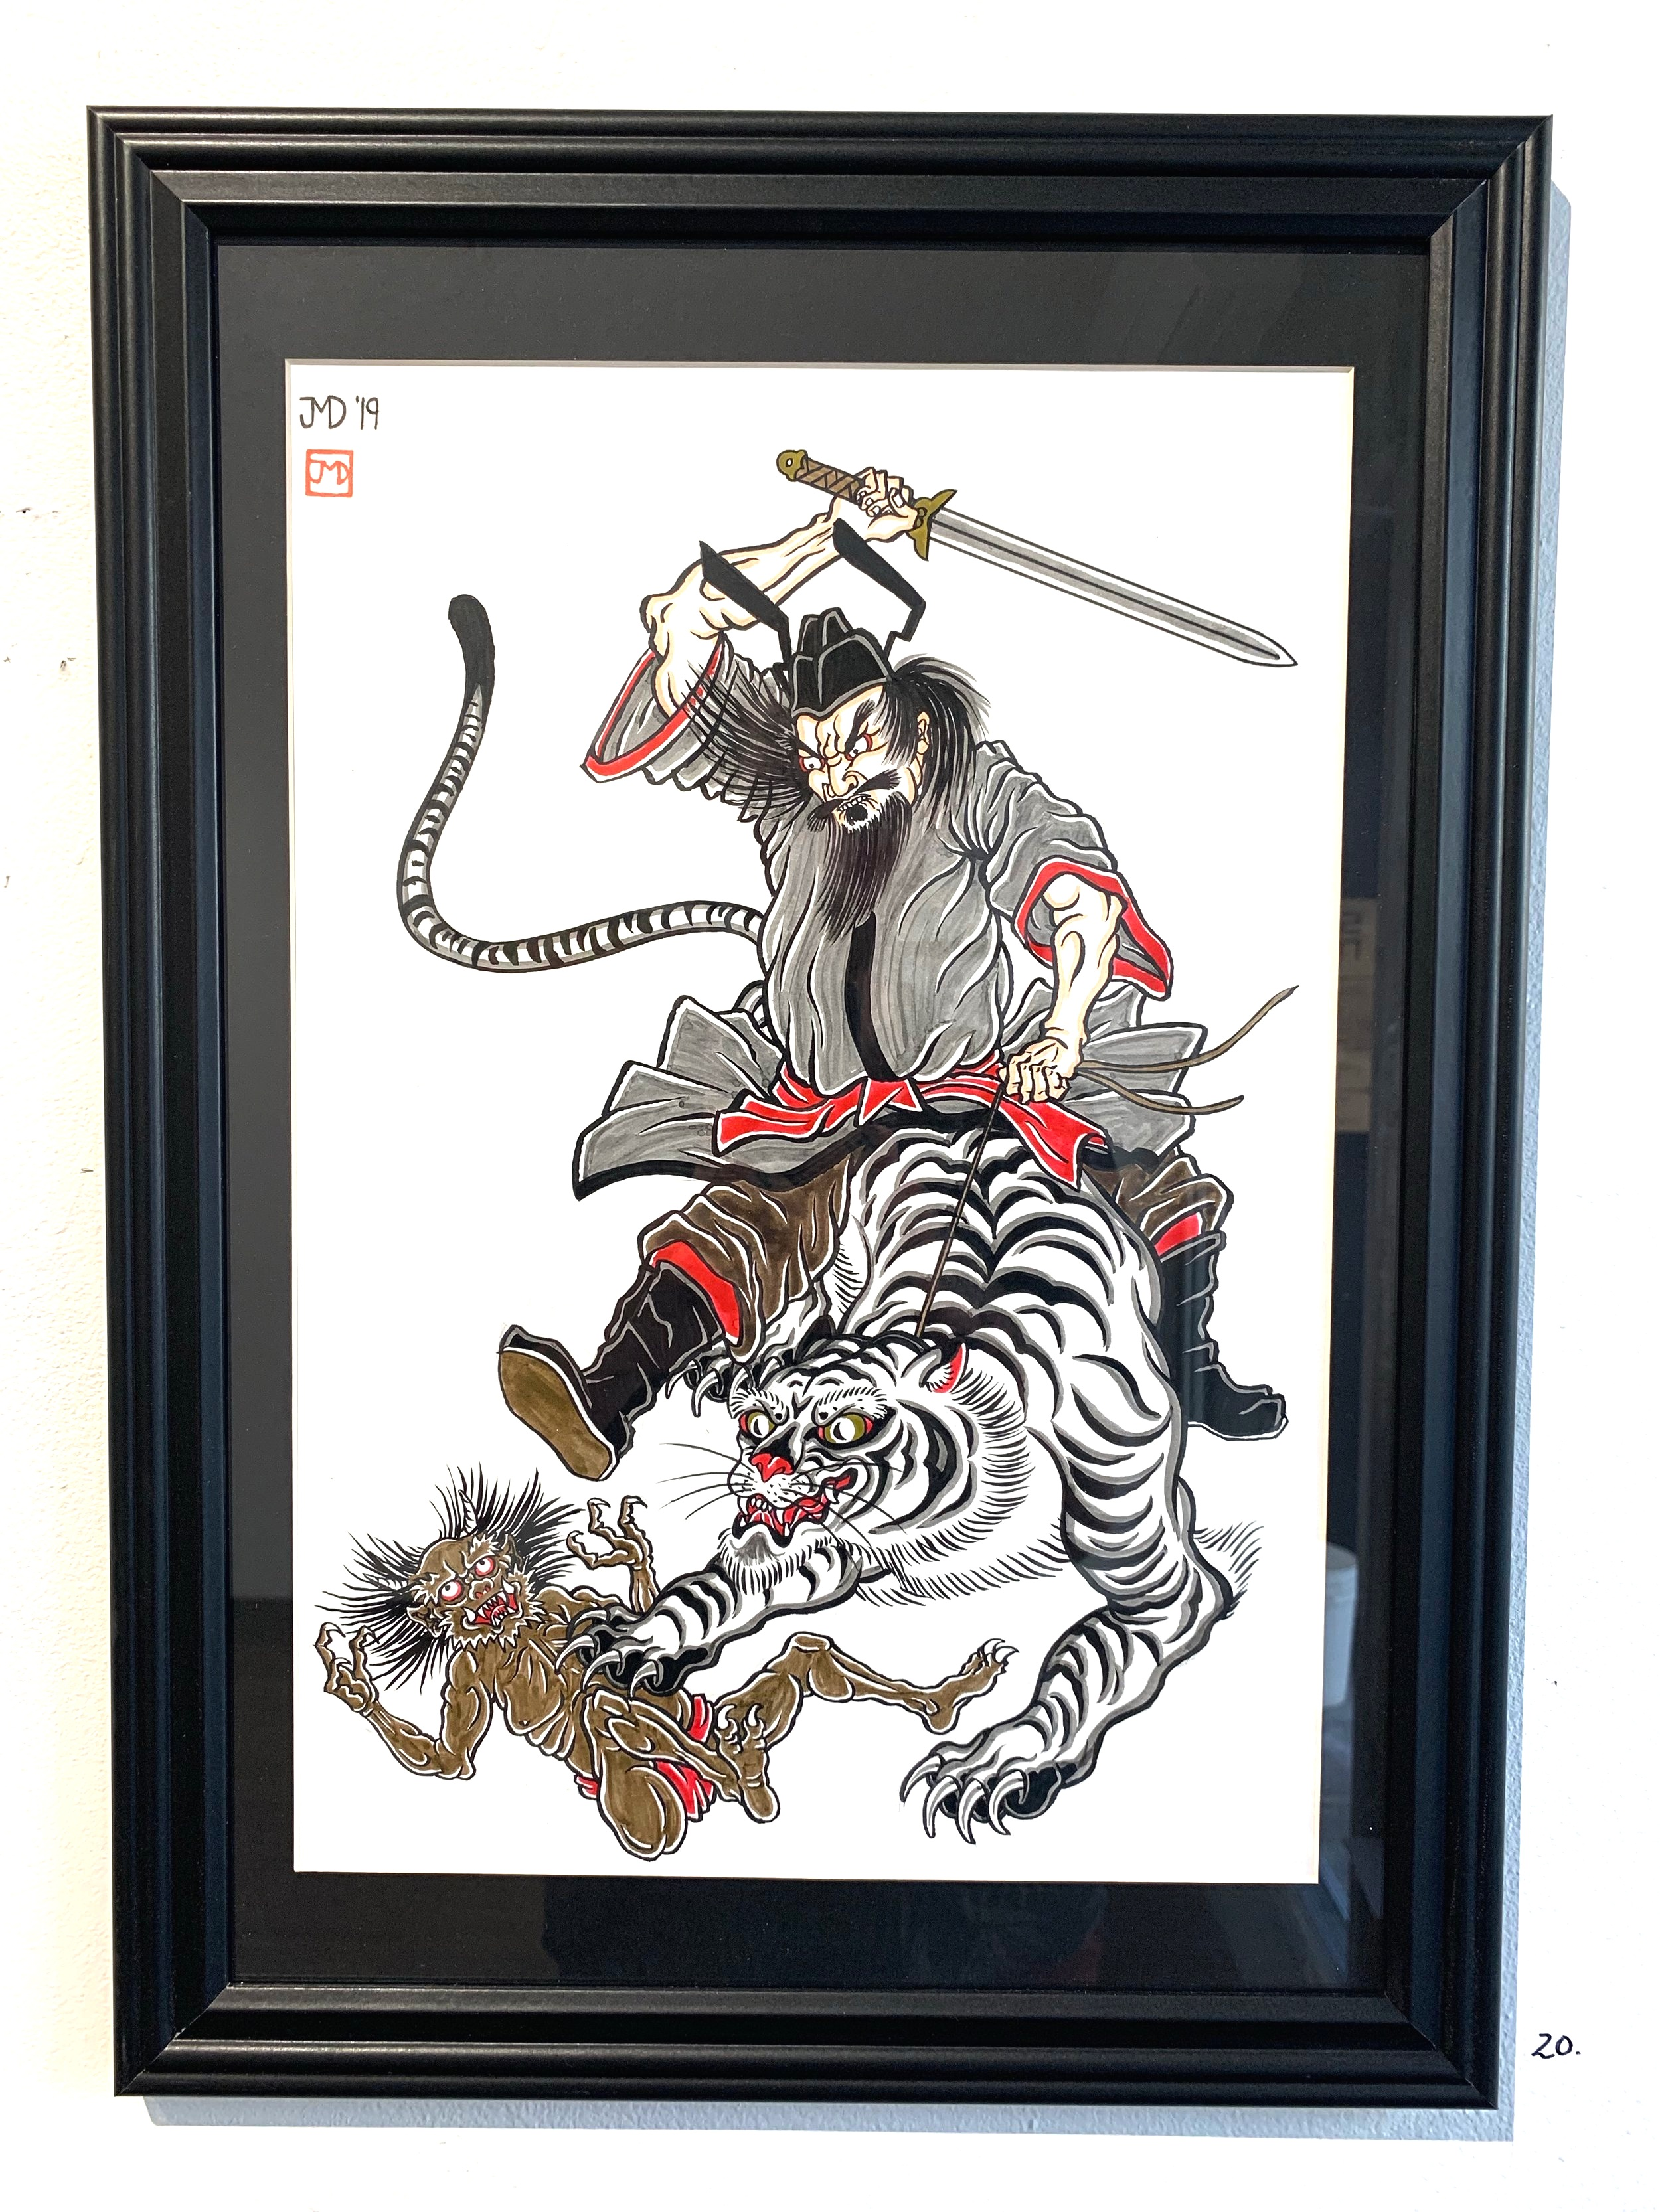 Variations on Traditional Japanese Tattoo Themes - Works by J.M. DuplessisOn View Now!